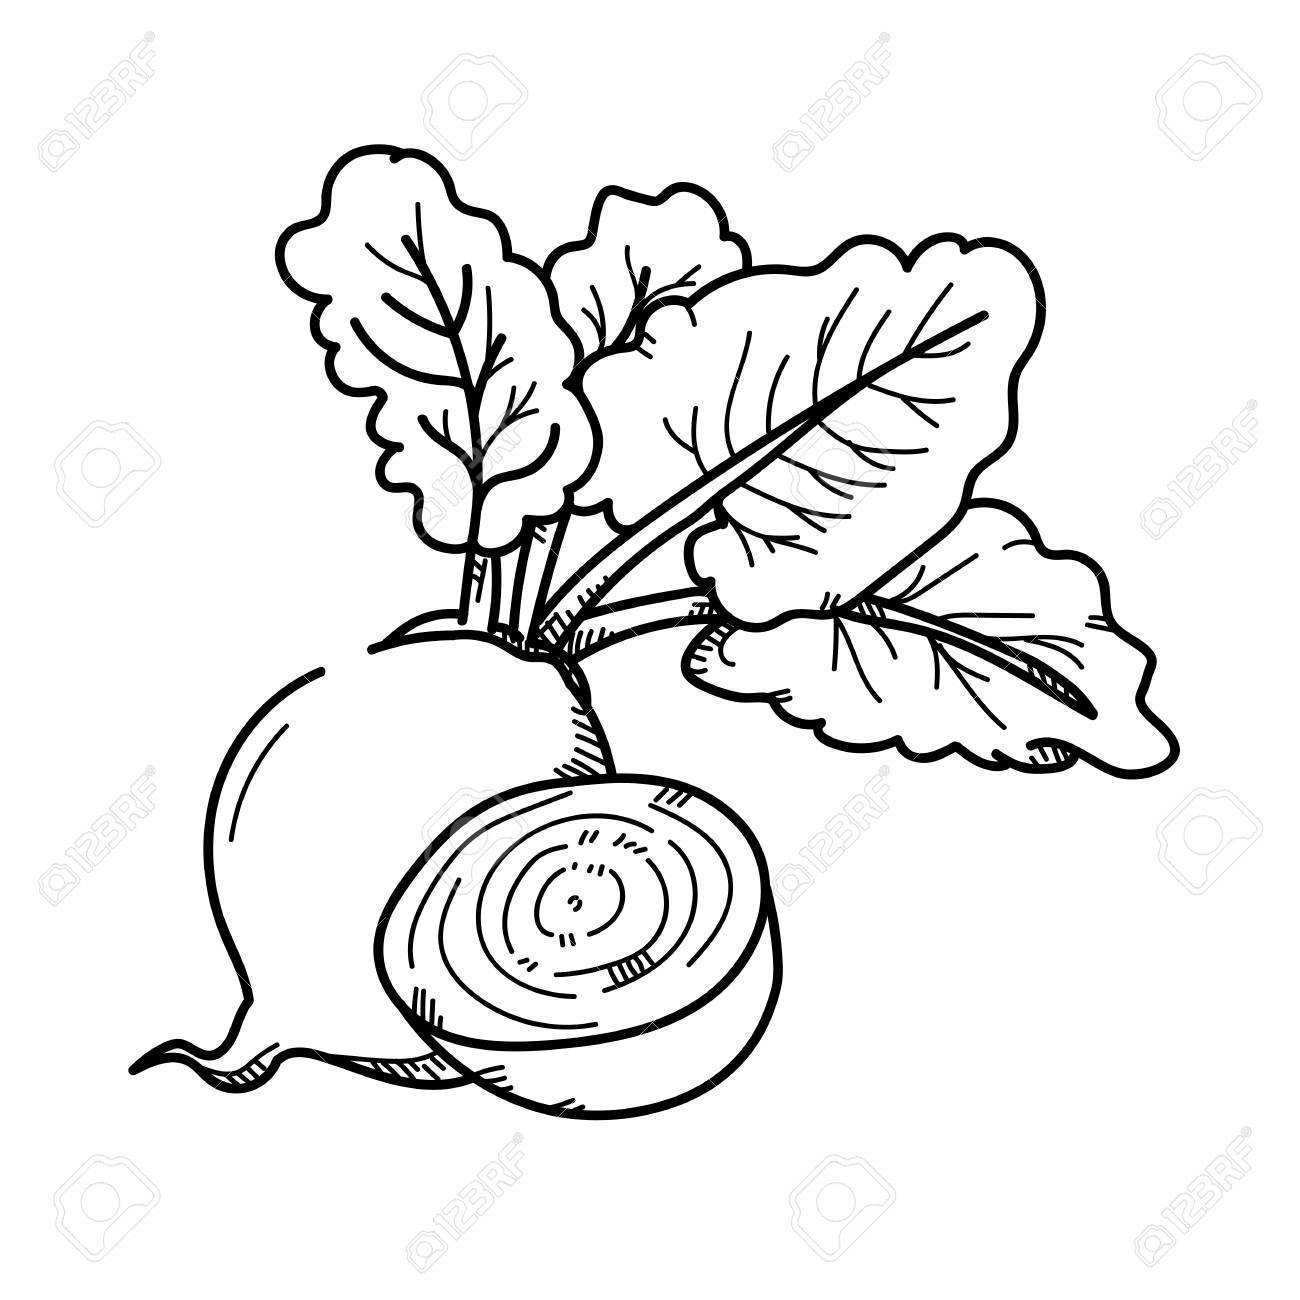 Freehand Drawing Illustration Beetroot Stock Photo Picture And